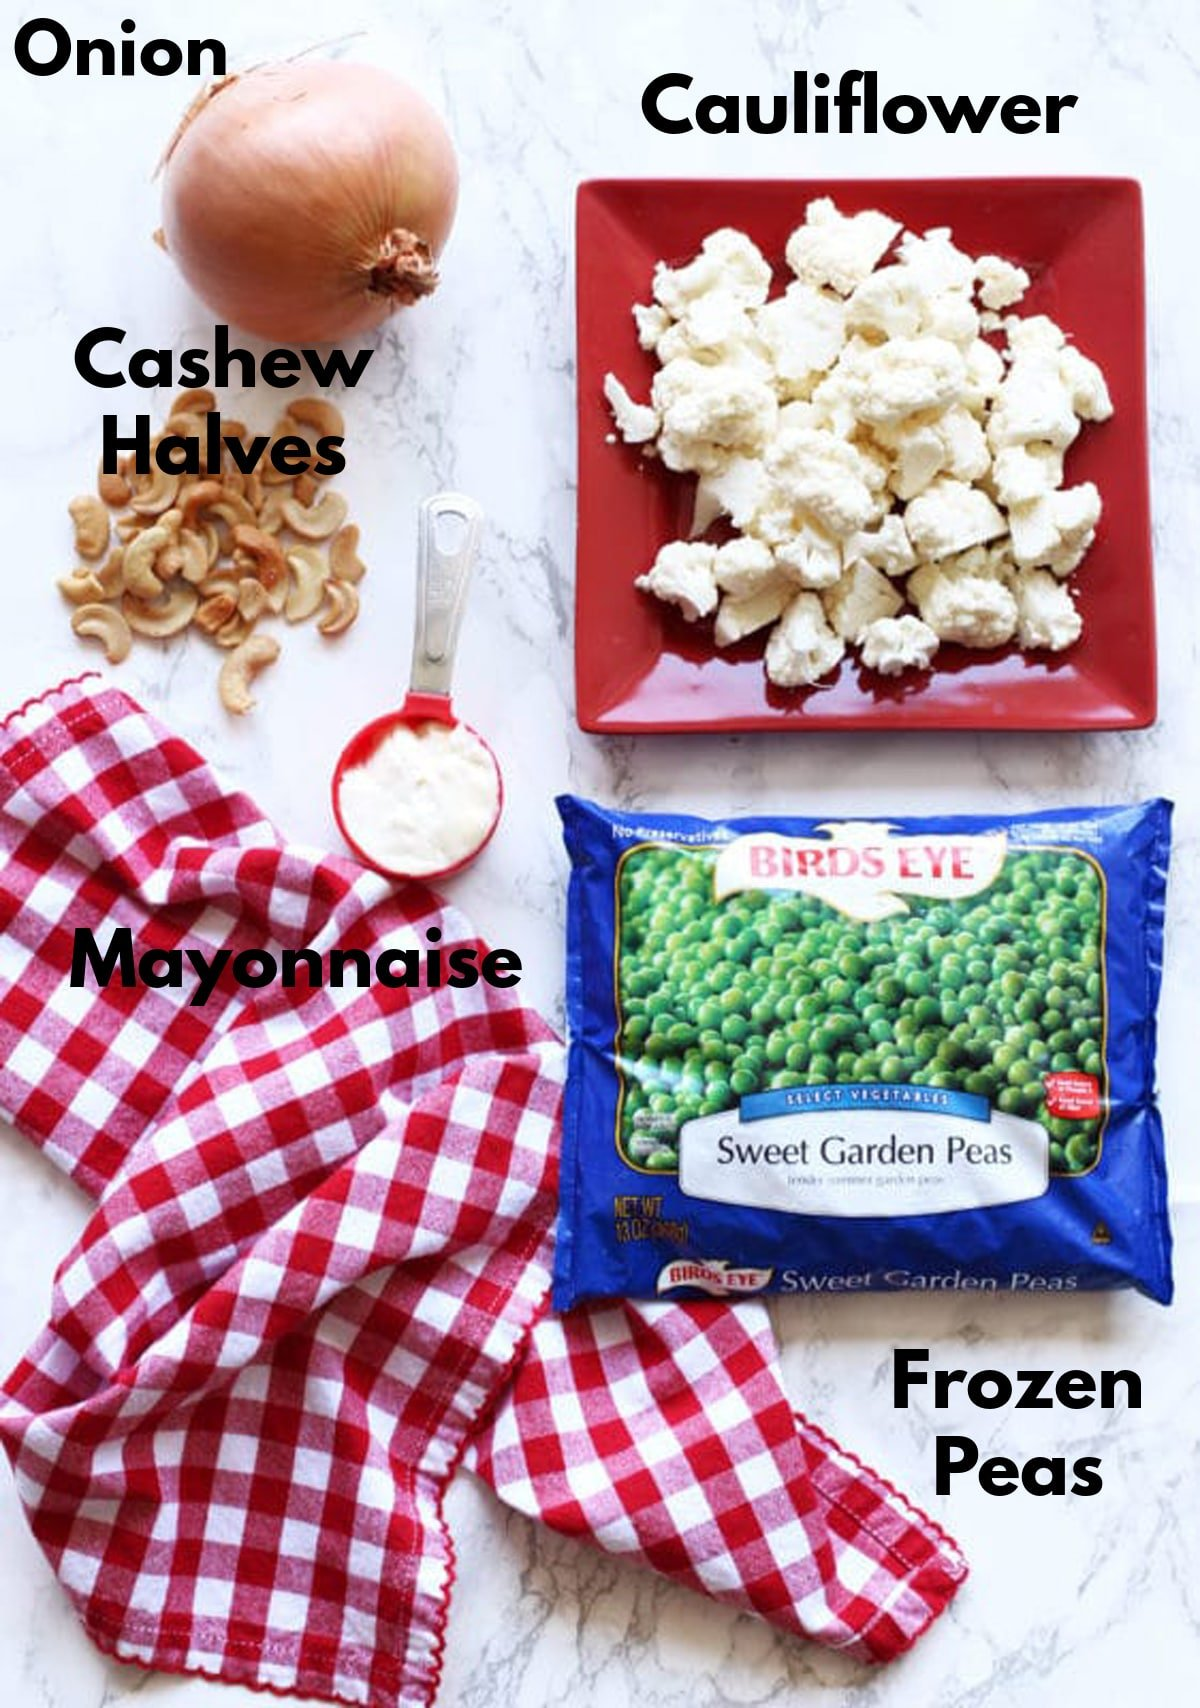 Cauliflower florets, onion, cashew halves, mayonnaise, and frozen peas on a marble countertop.